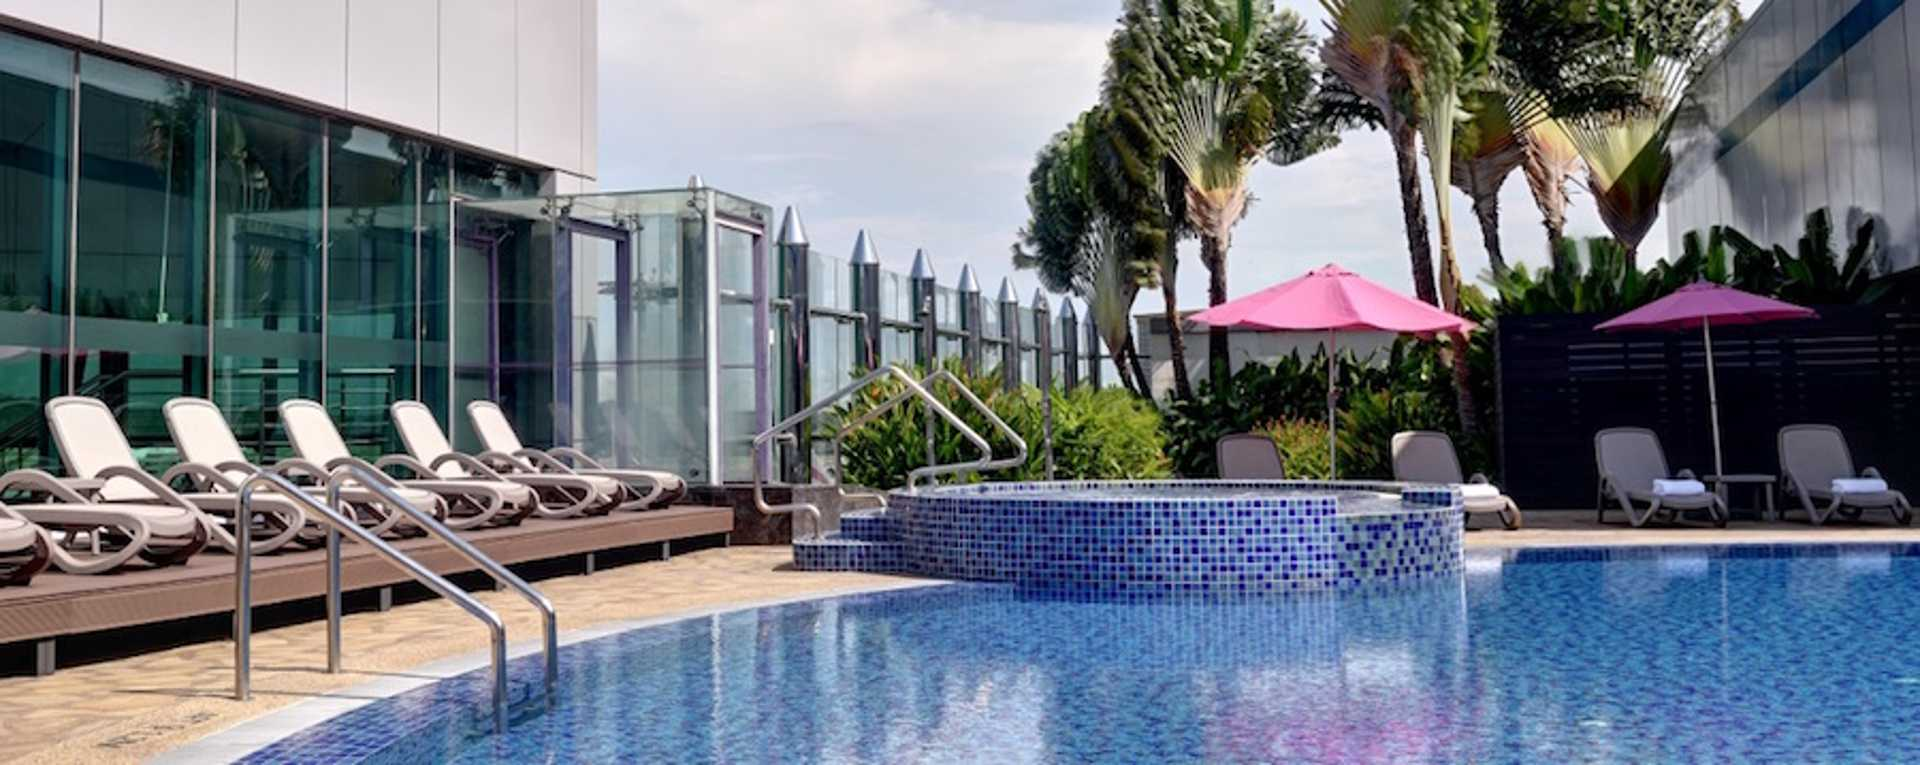 3-rooftop-swimming-pool